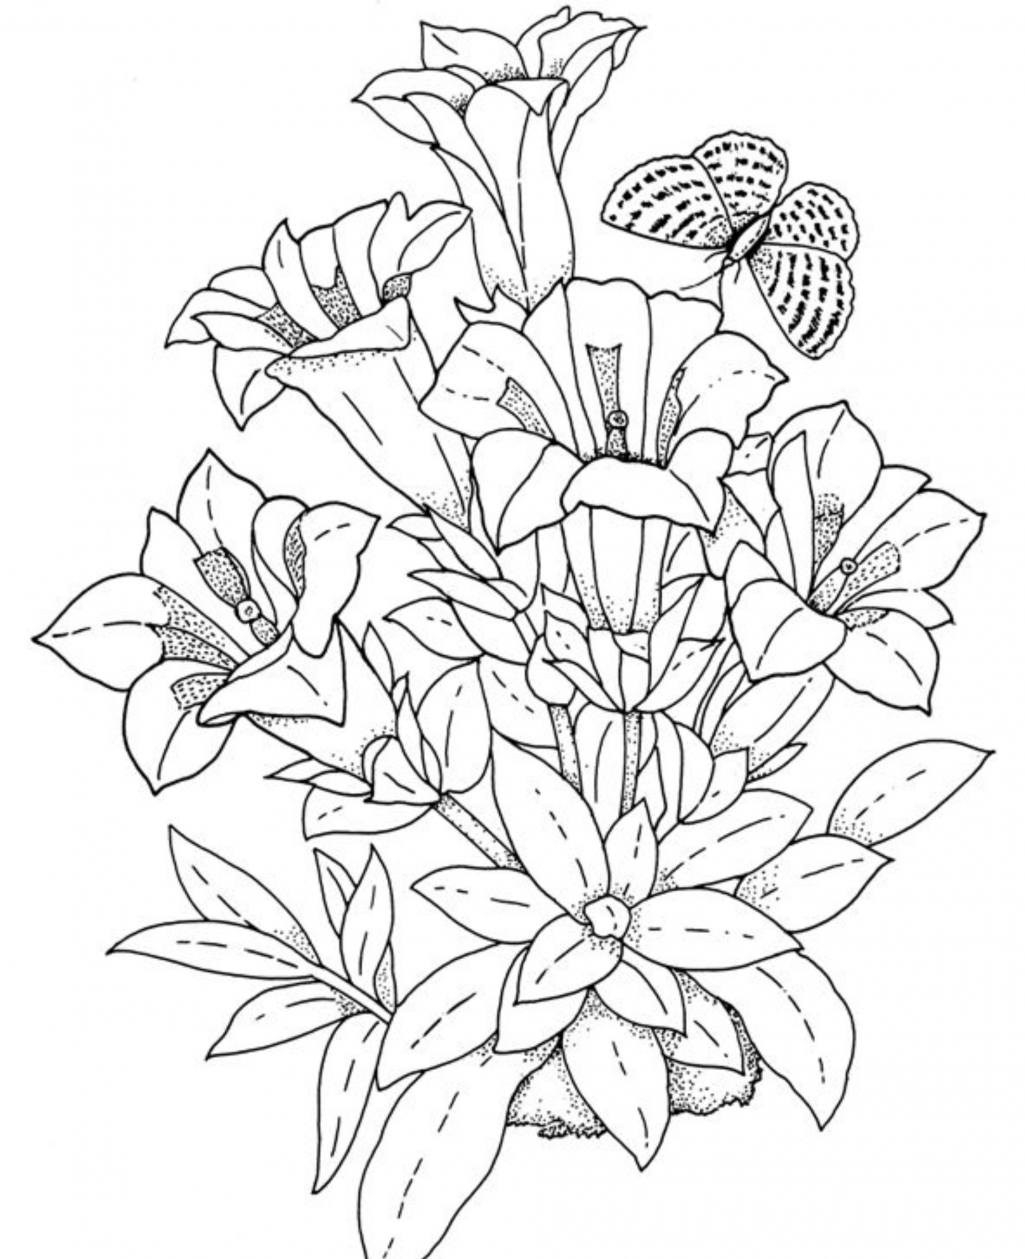 detailed flower coloring pages detailed flower coloring pages to download and print for free pages flower detailed coloring